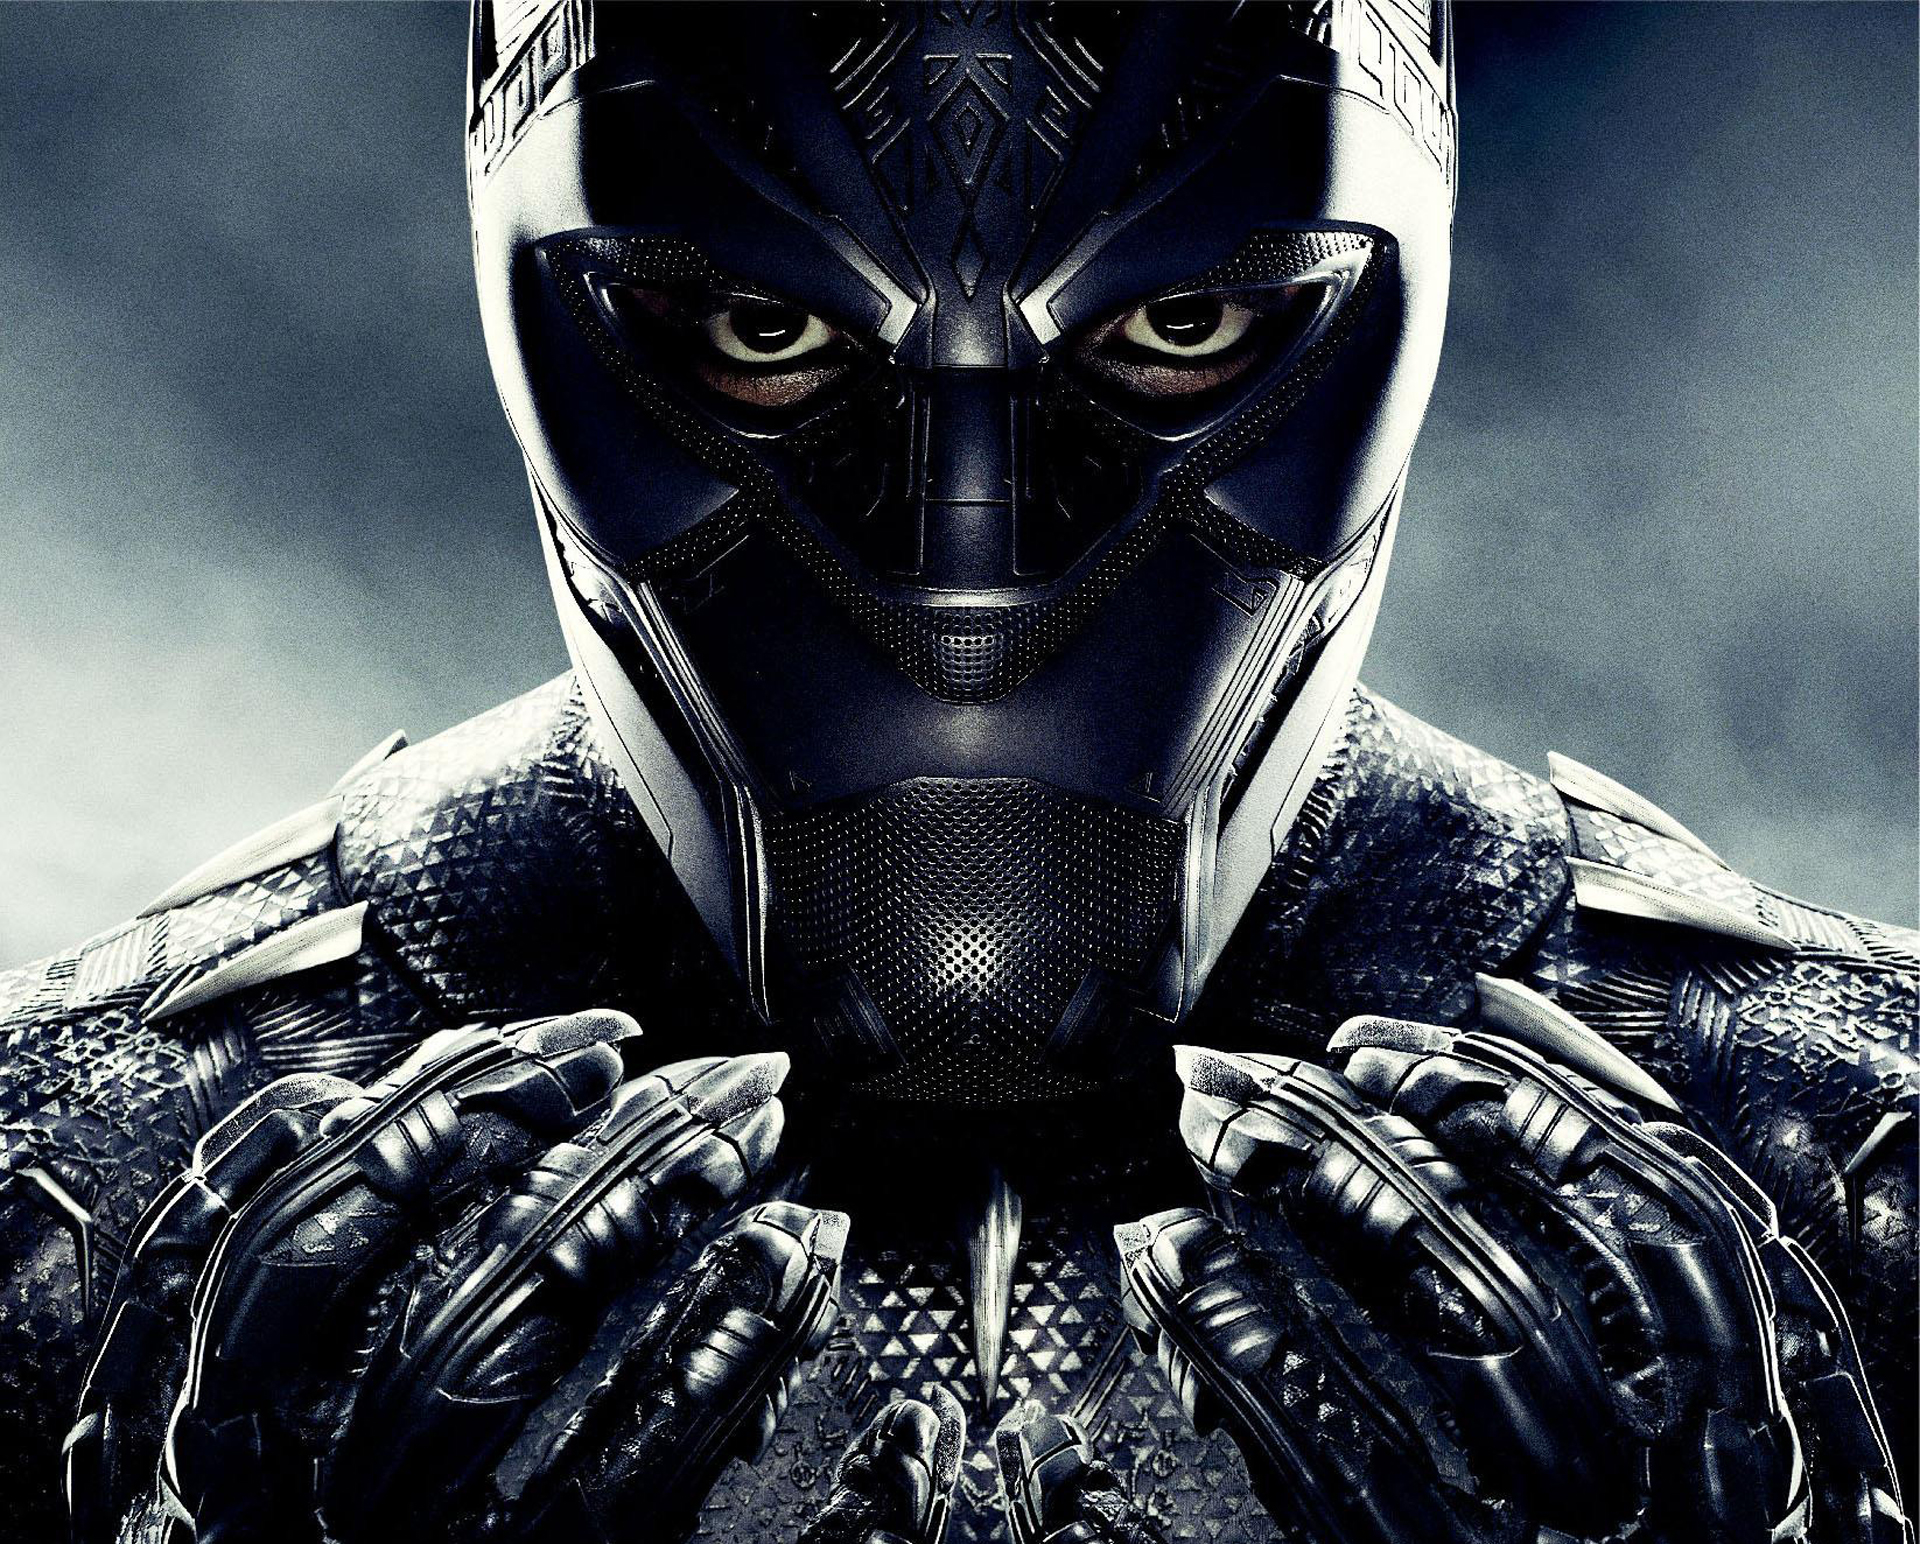 Black Panther Marvel Wallpaper 2018 In Marvel: Black Panther 2018 Poster, HD Movies, 4k Wallpapers